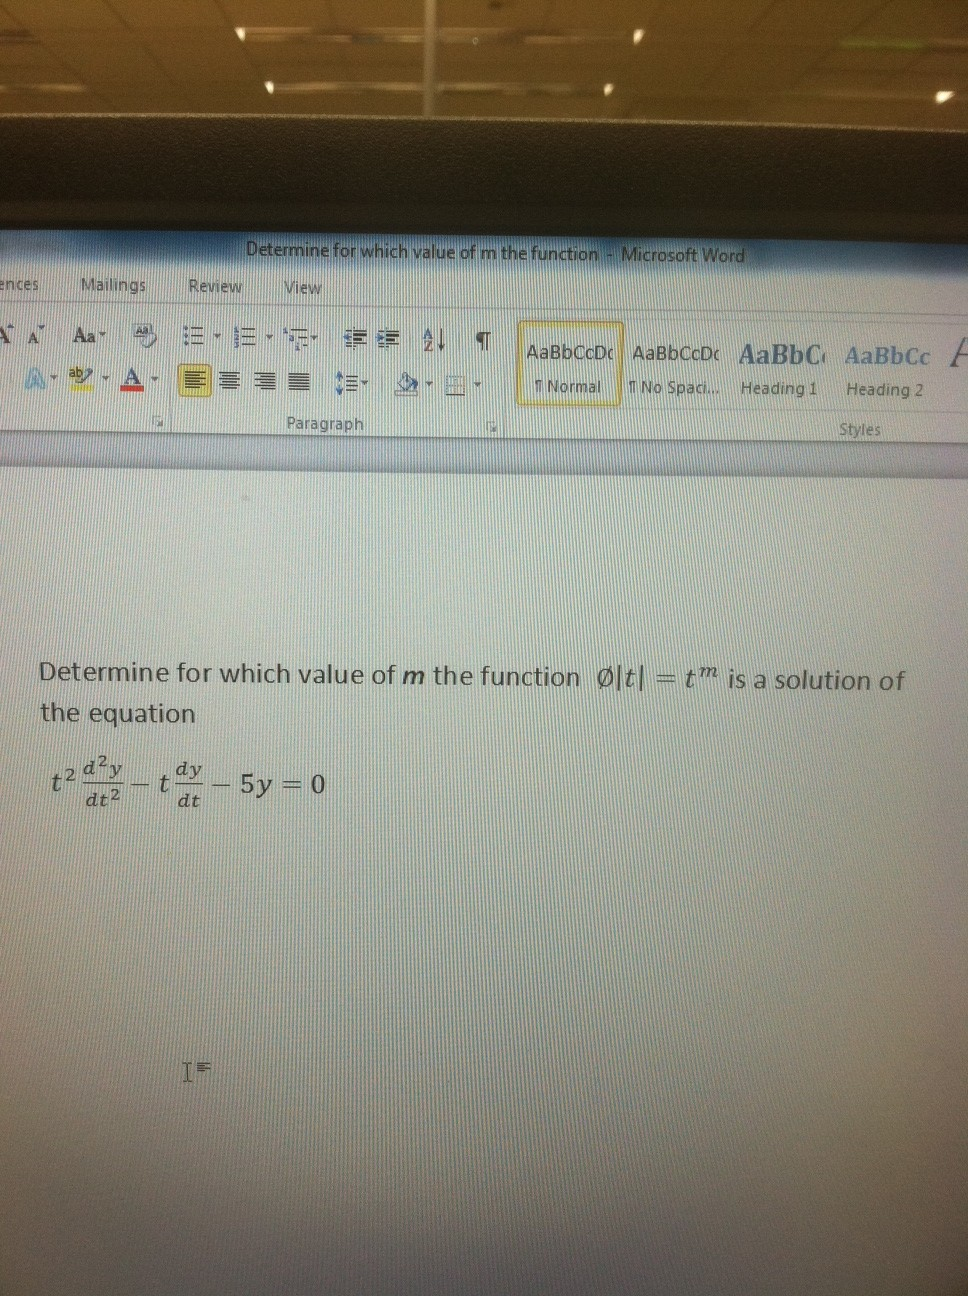 Determine for which value of m the function phi |t